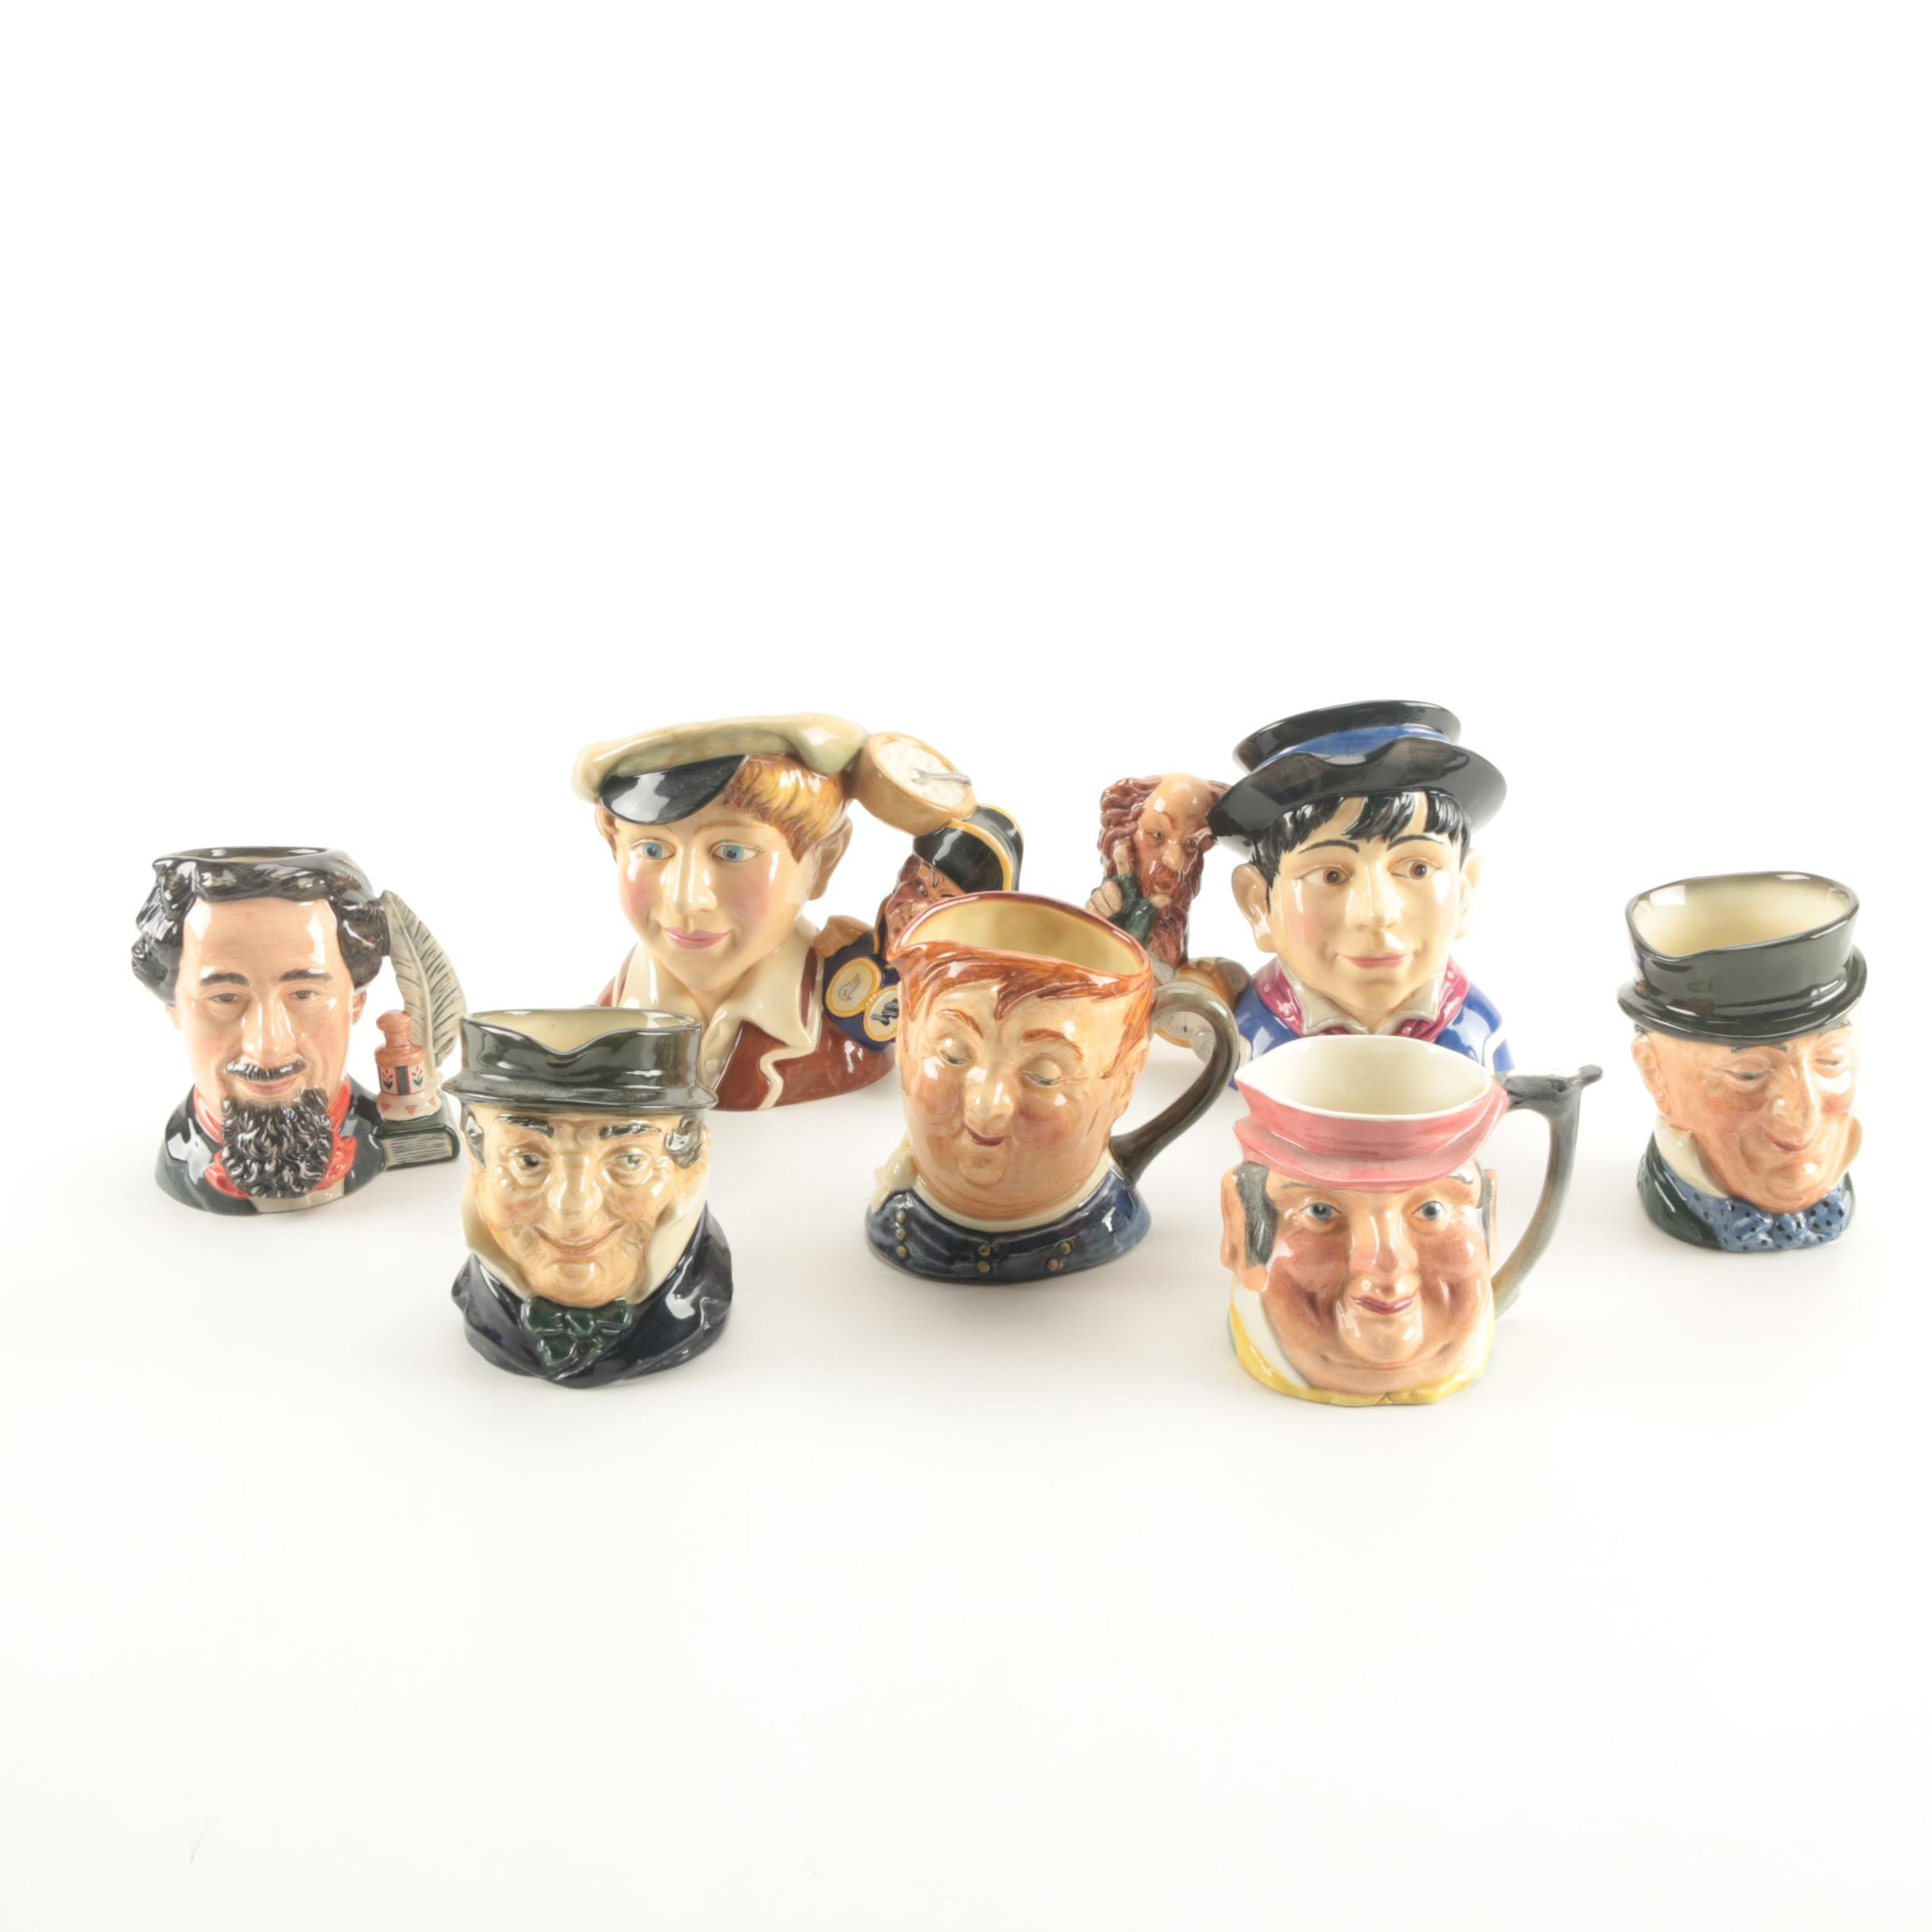 Royal Doulton Toby Jugs of Charles Dickens Characters